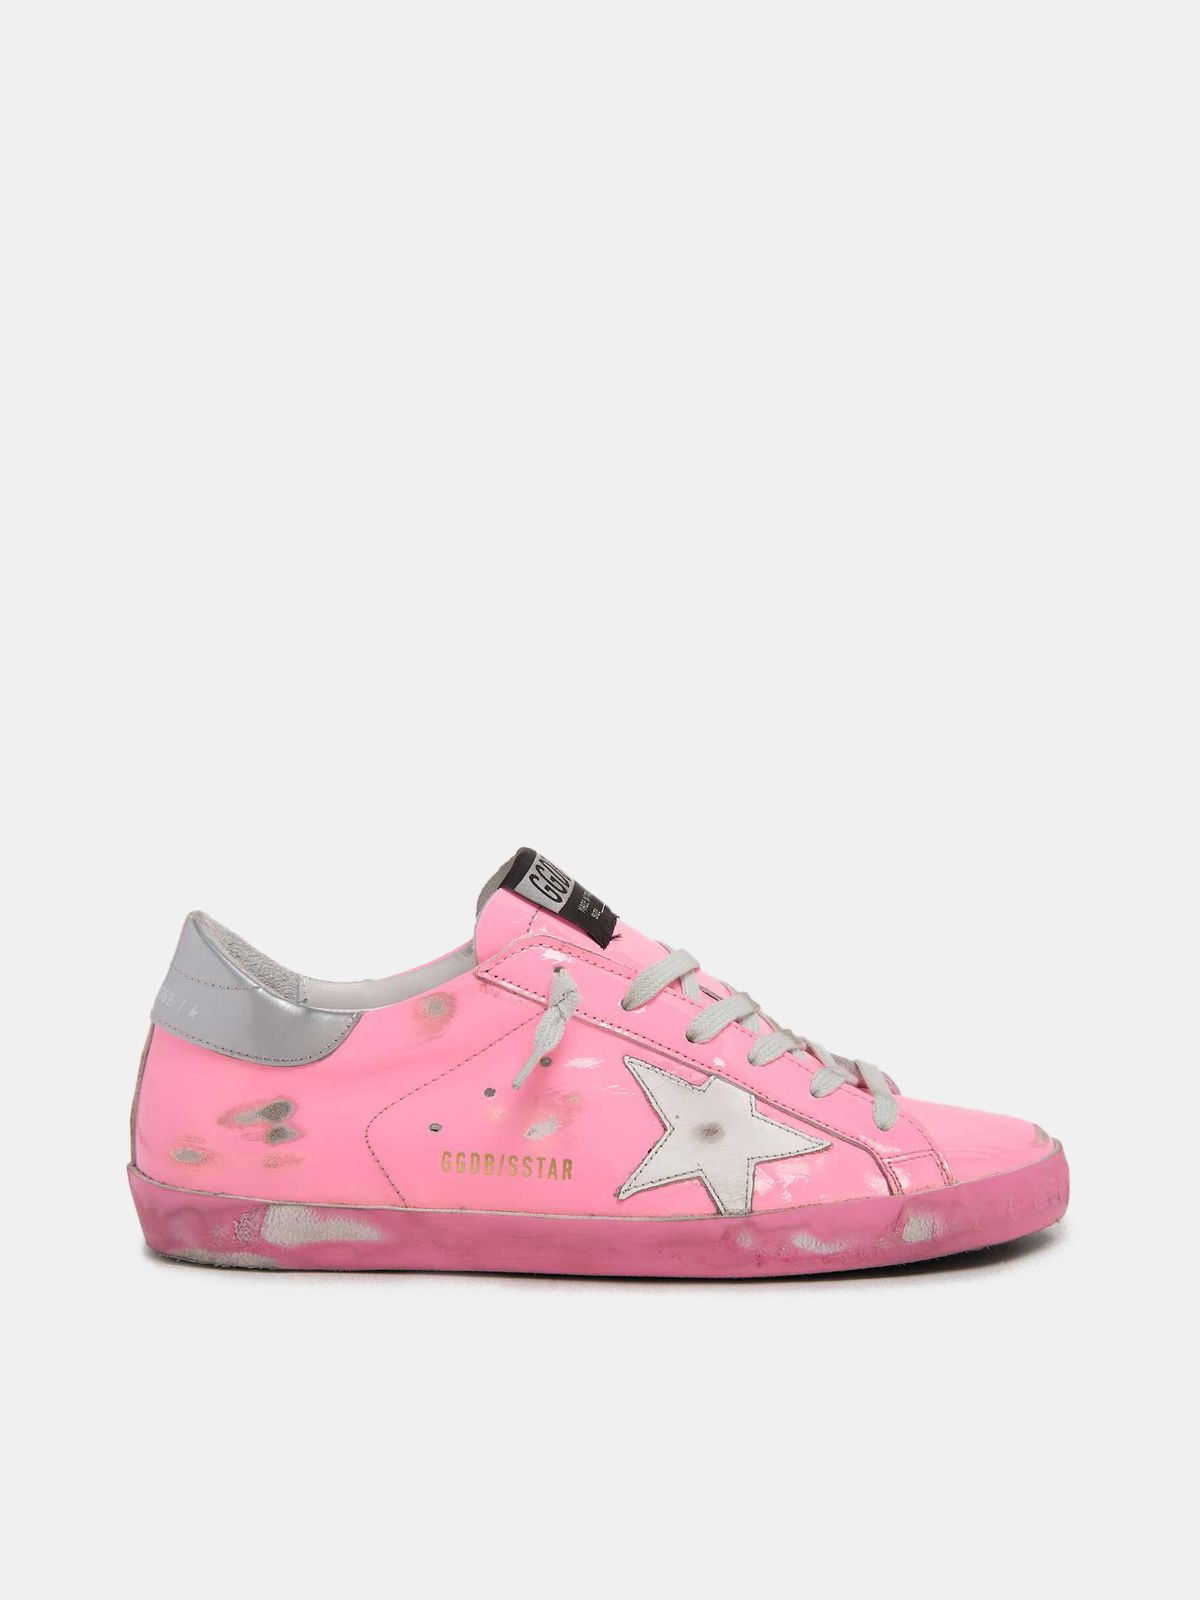 Pink Super-Star sneakers with silver heel tab